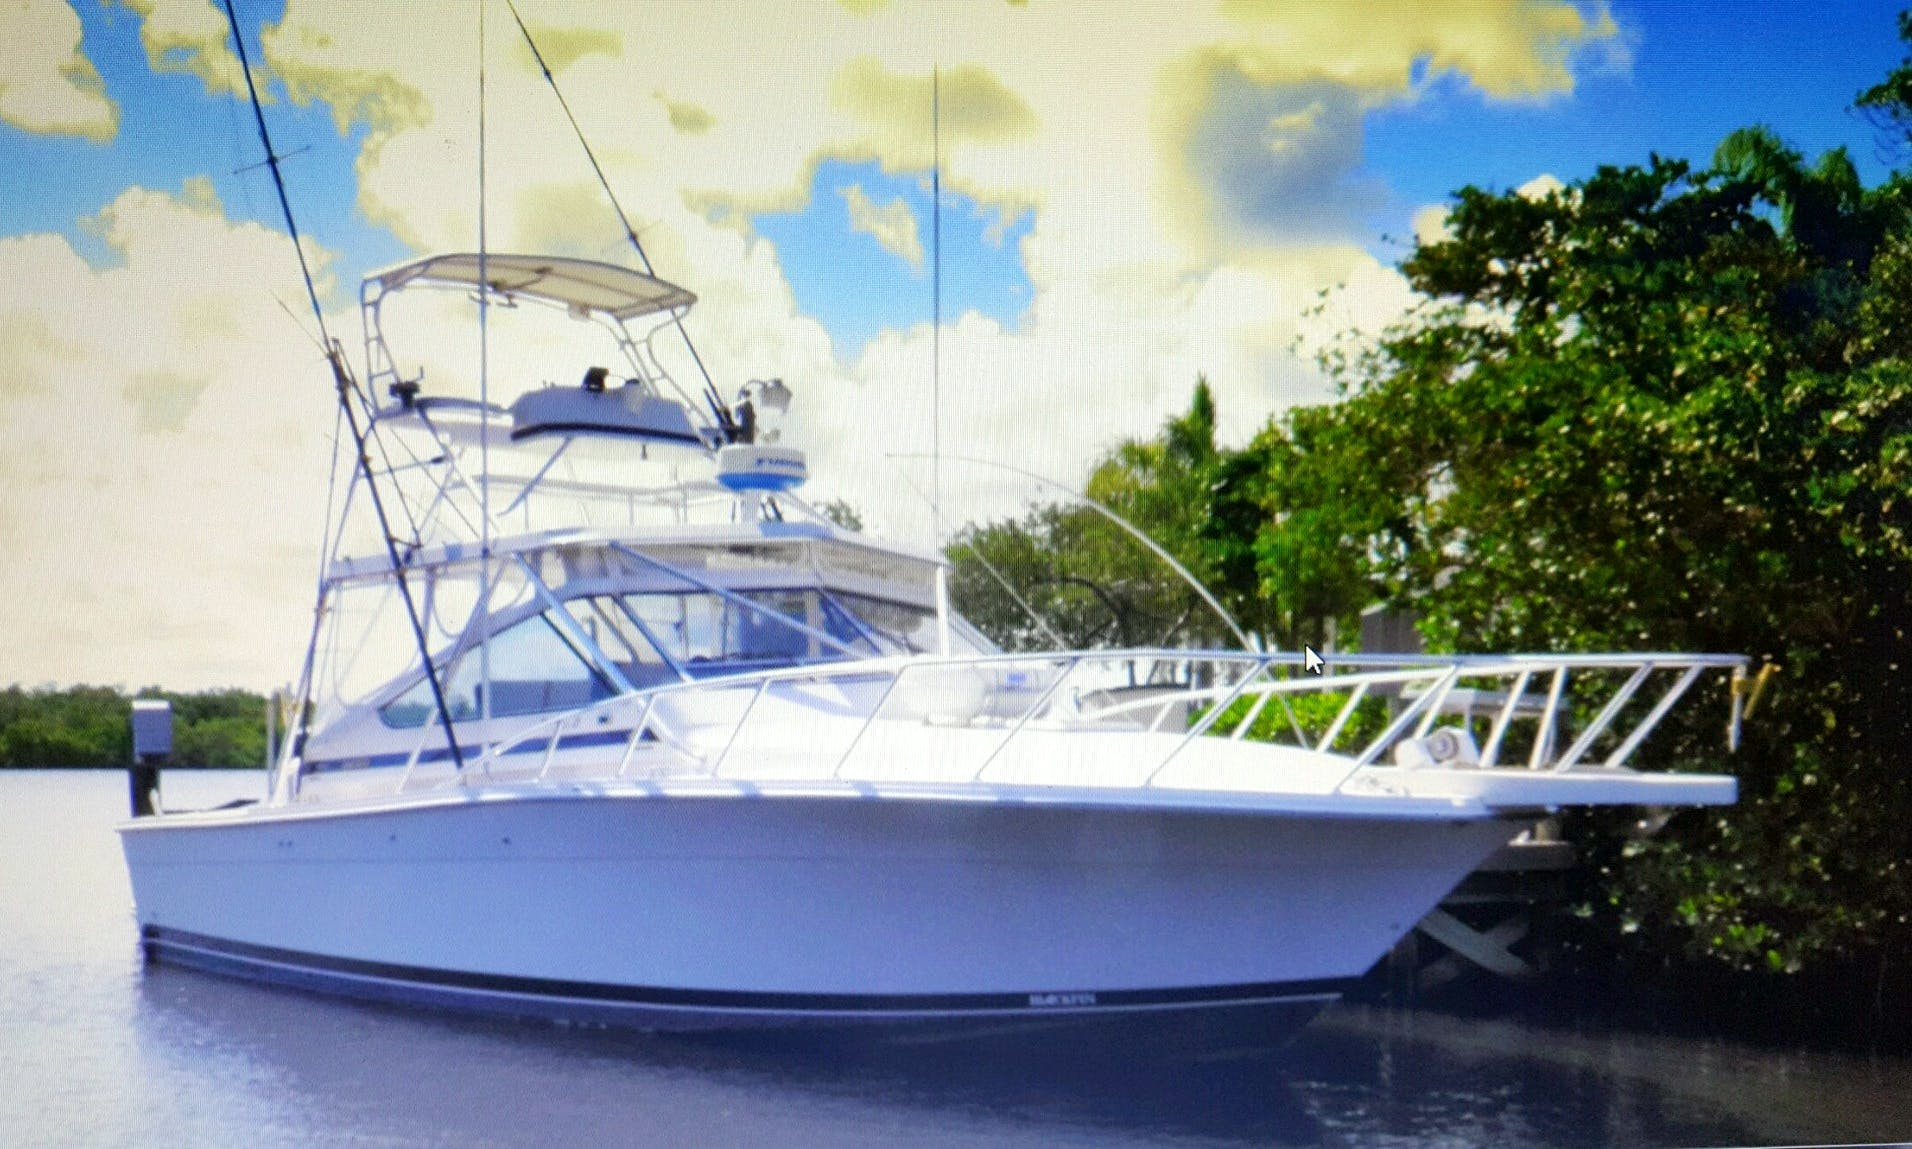 Book a Offshore And Reef Fishing Charter In Islamorada, Florida